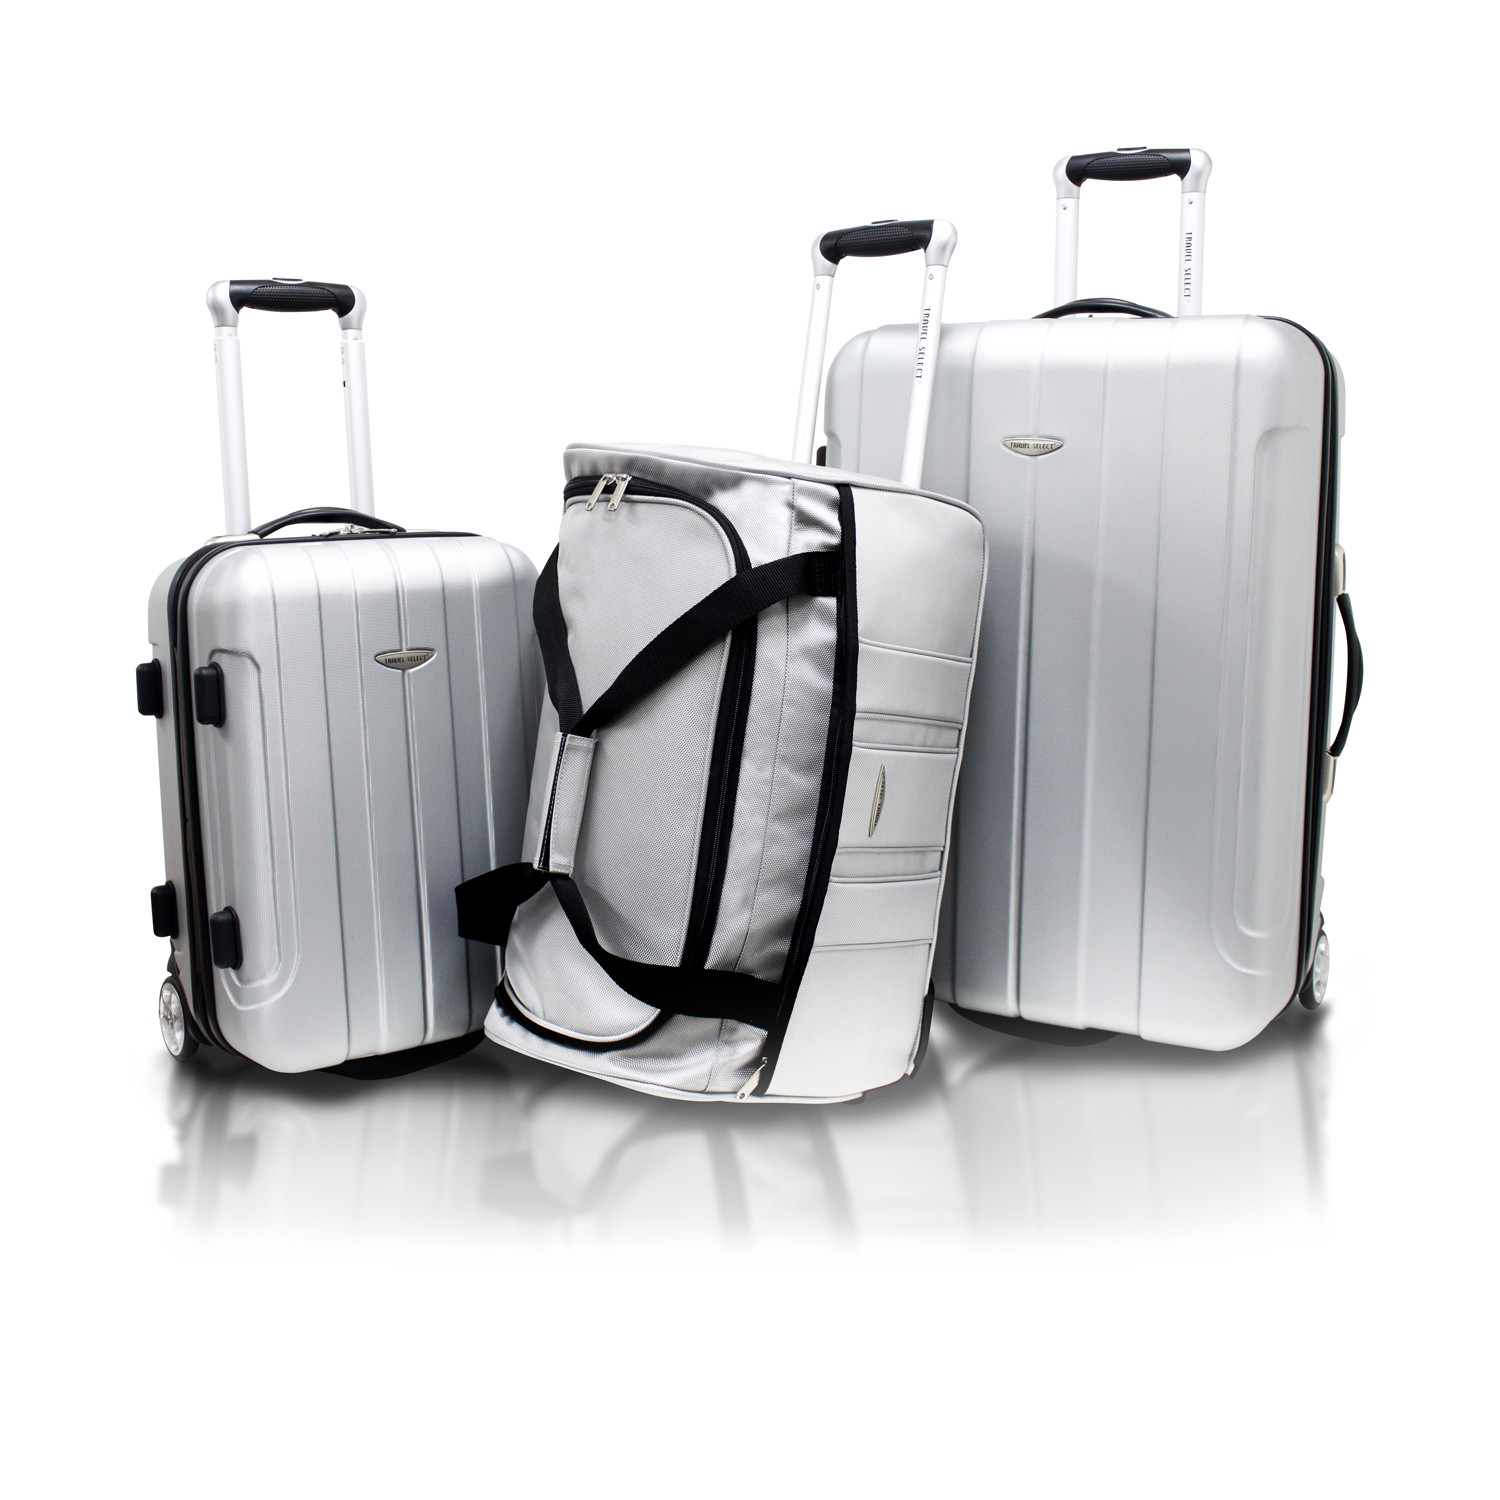 Travel Select Crossing 3pc Hardshell Luggage Set // Silver ...